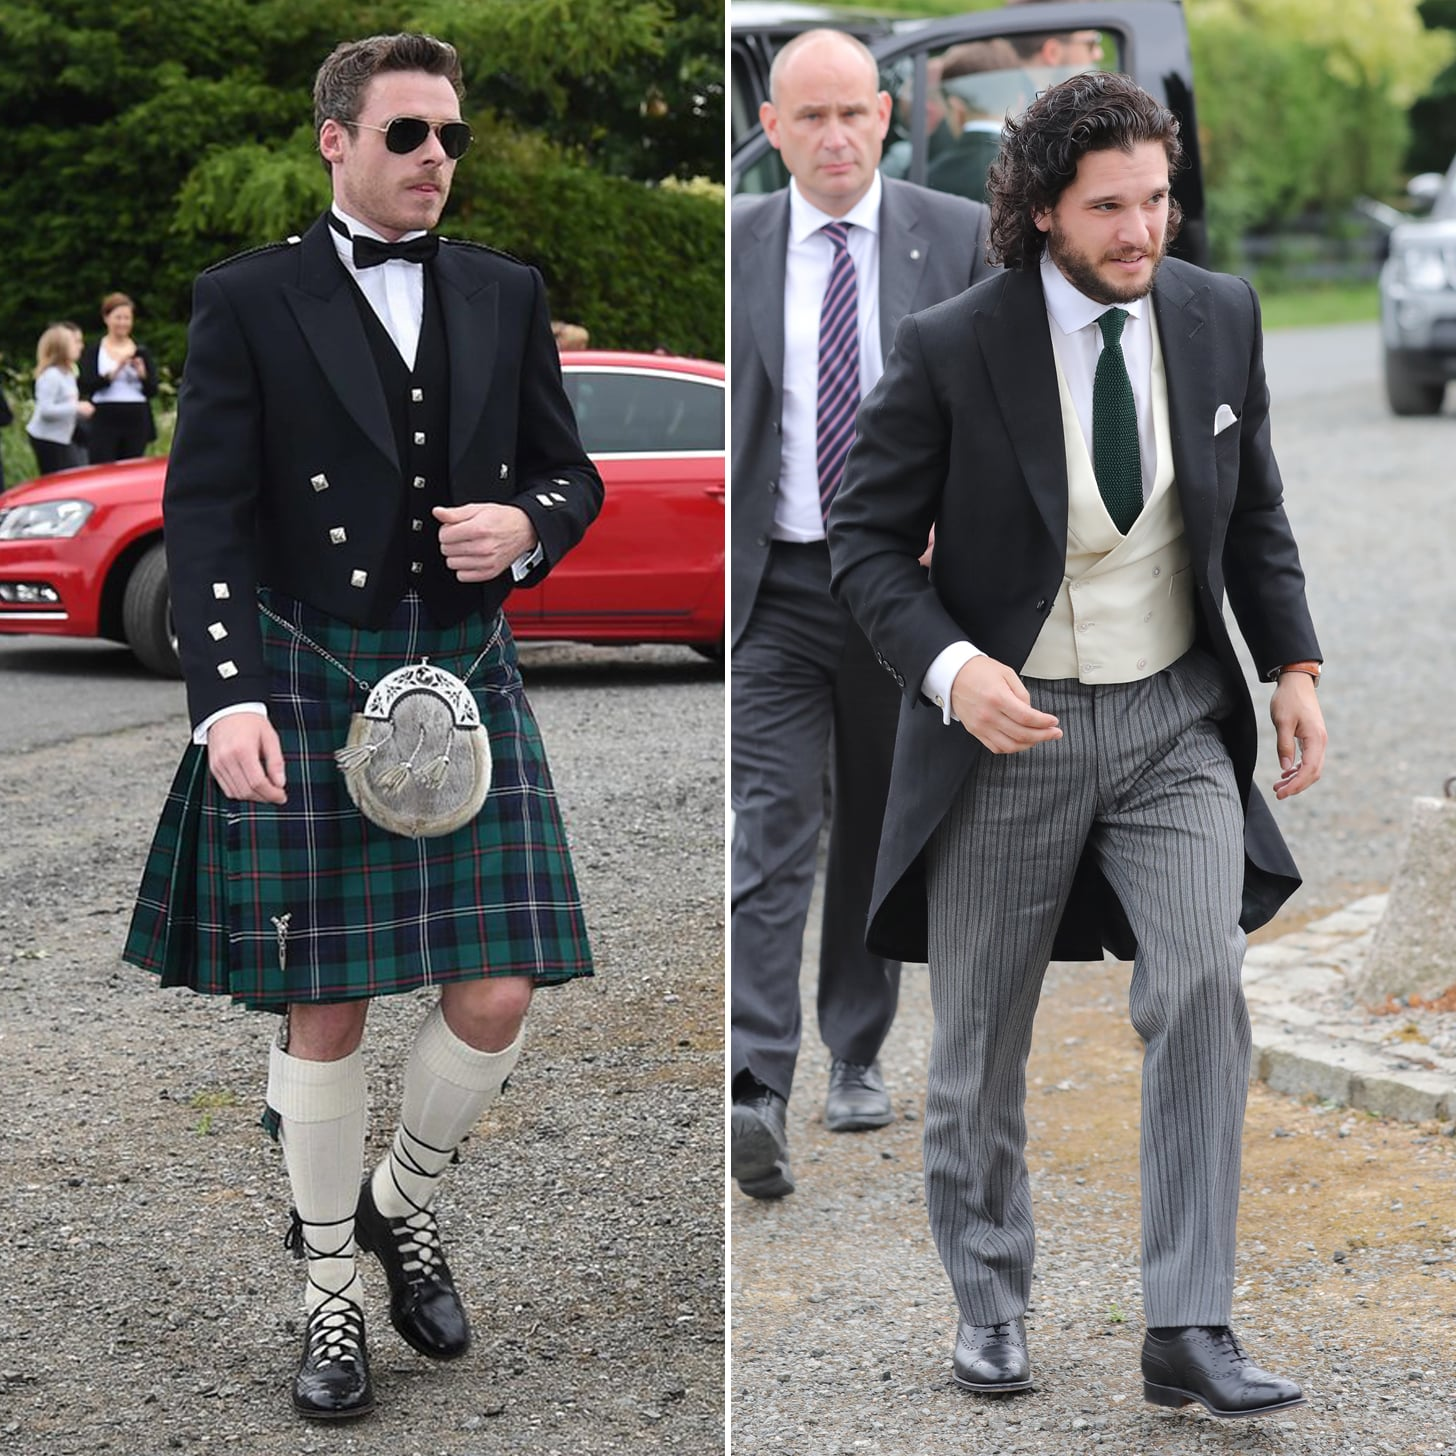 Kit Harington Wedding.Robb Stark Game Of Thrones Quote At Kit Harington S Wedding